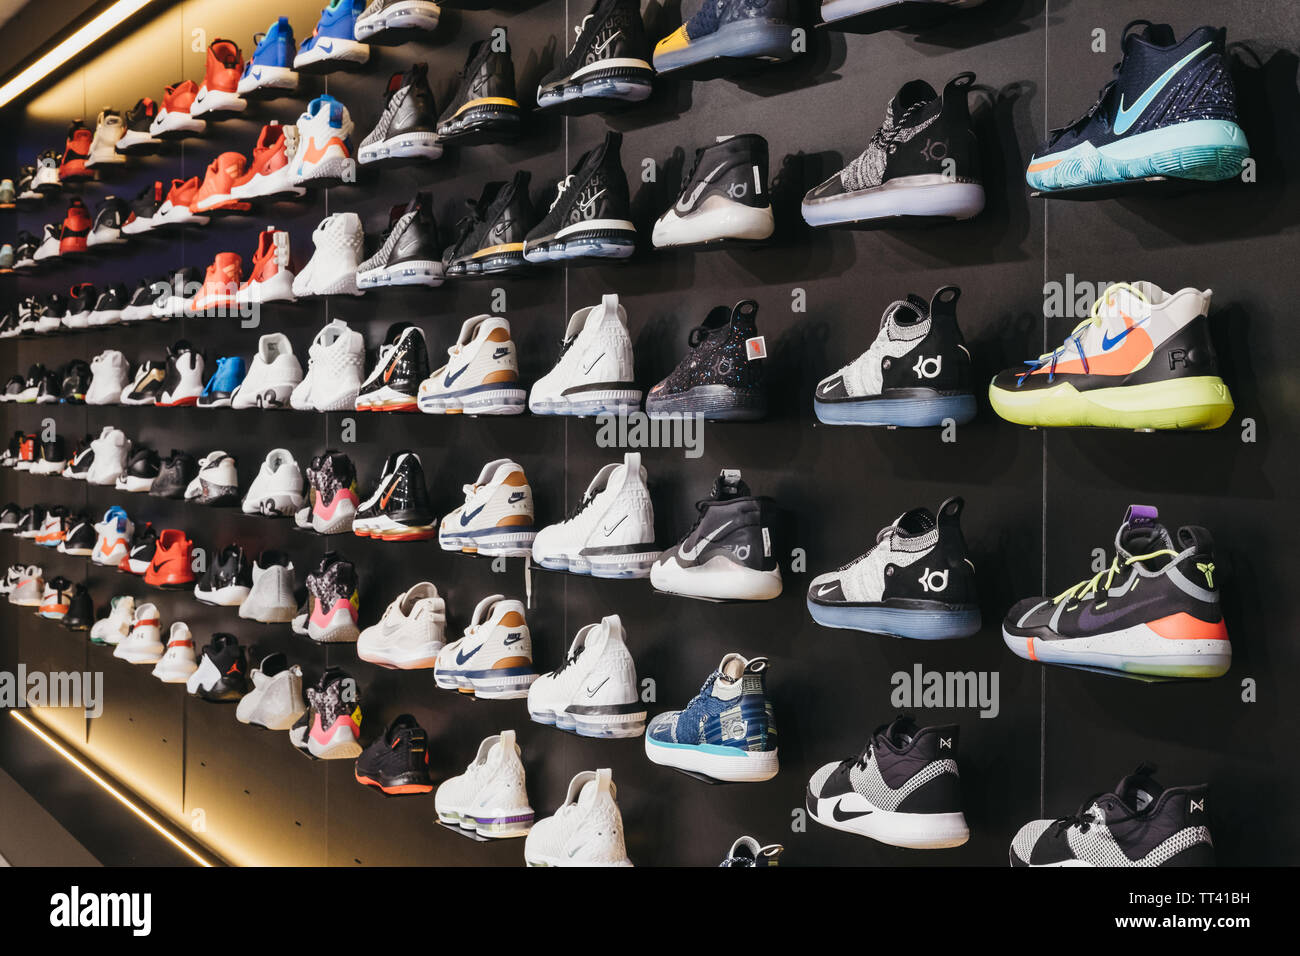 4cea5027dc4 Dommeldange, Luxembourg - May 18, 2019: Variety of basketball shoes on sale  inside